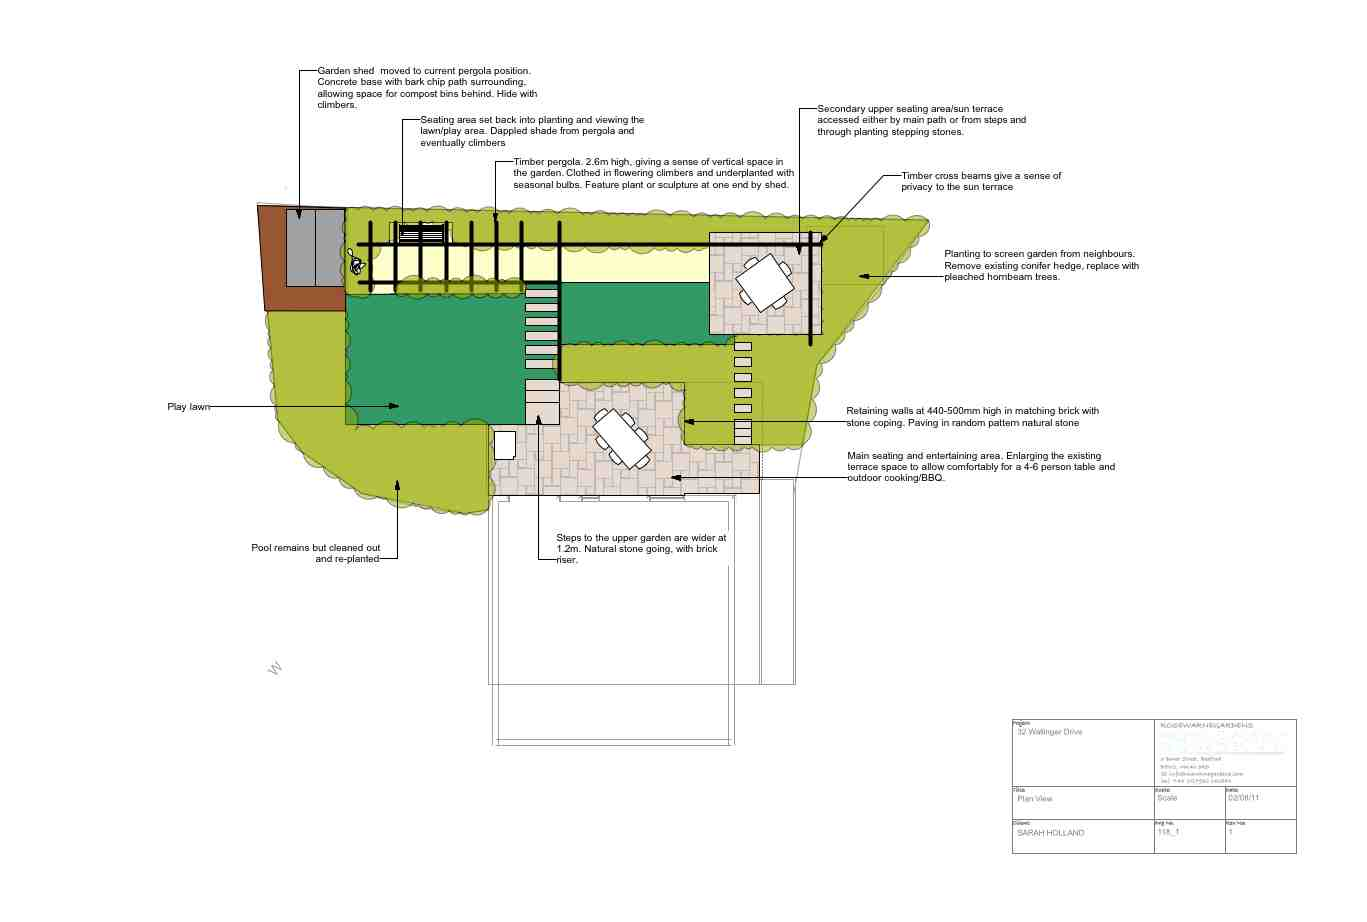 GArden Design Bedfordshire - Outline Plans